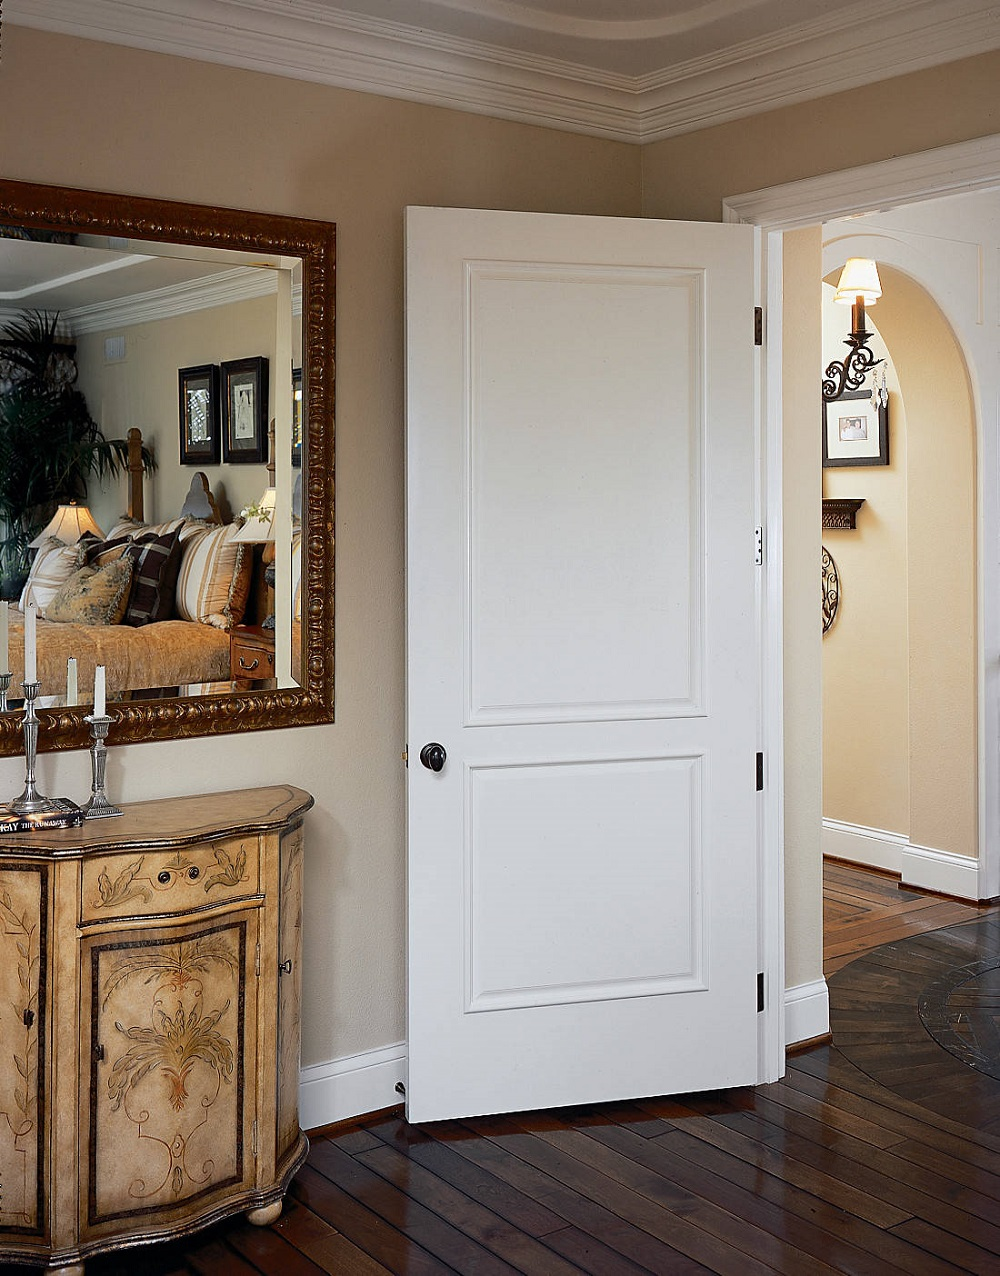 The types of doors you can use in your home design